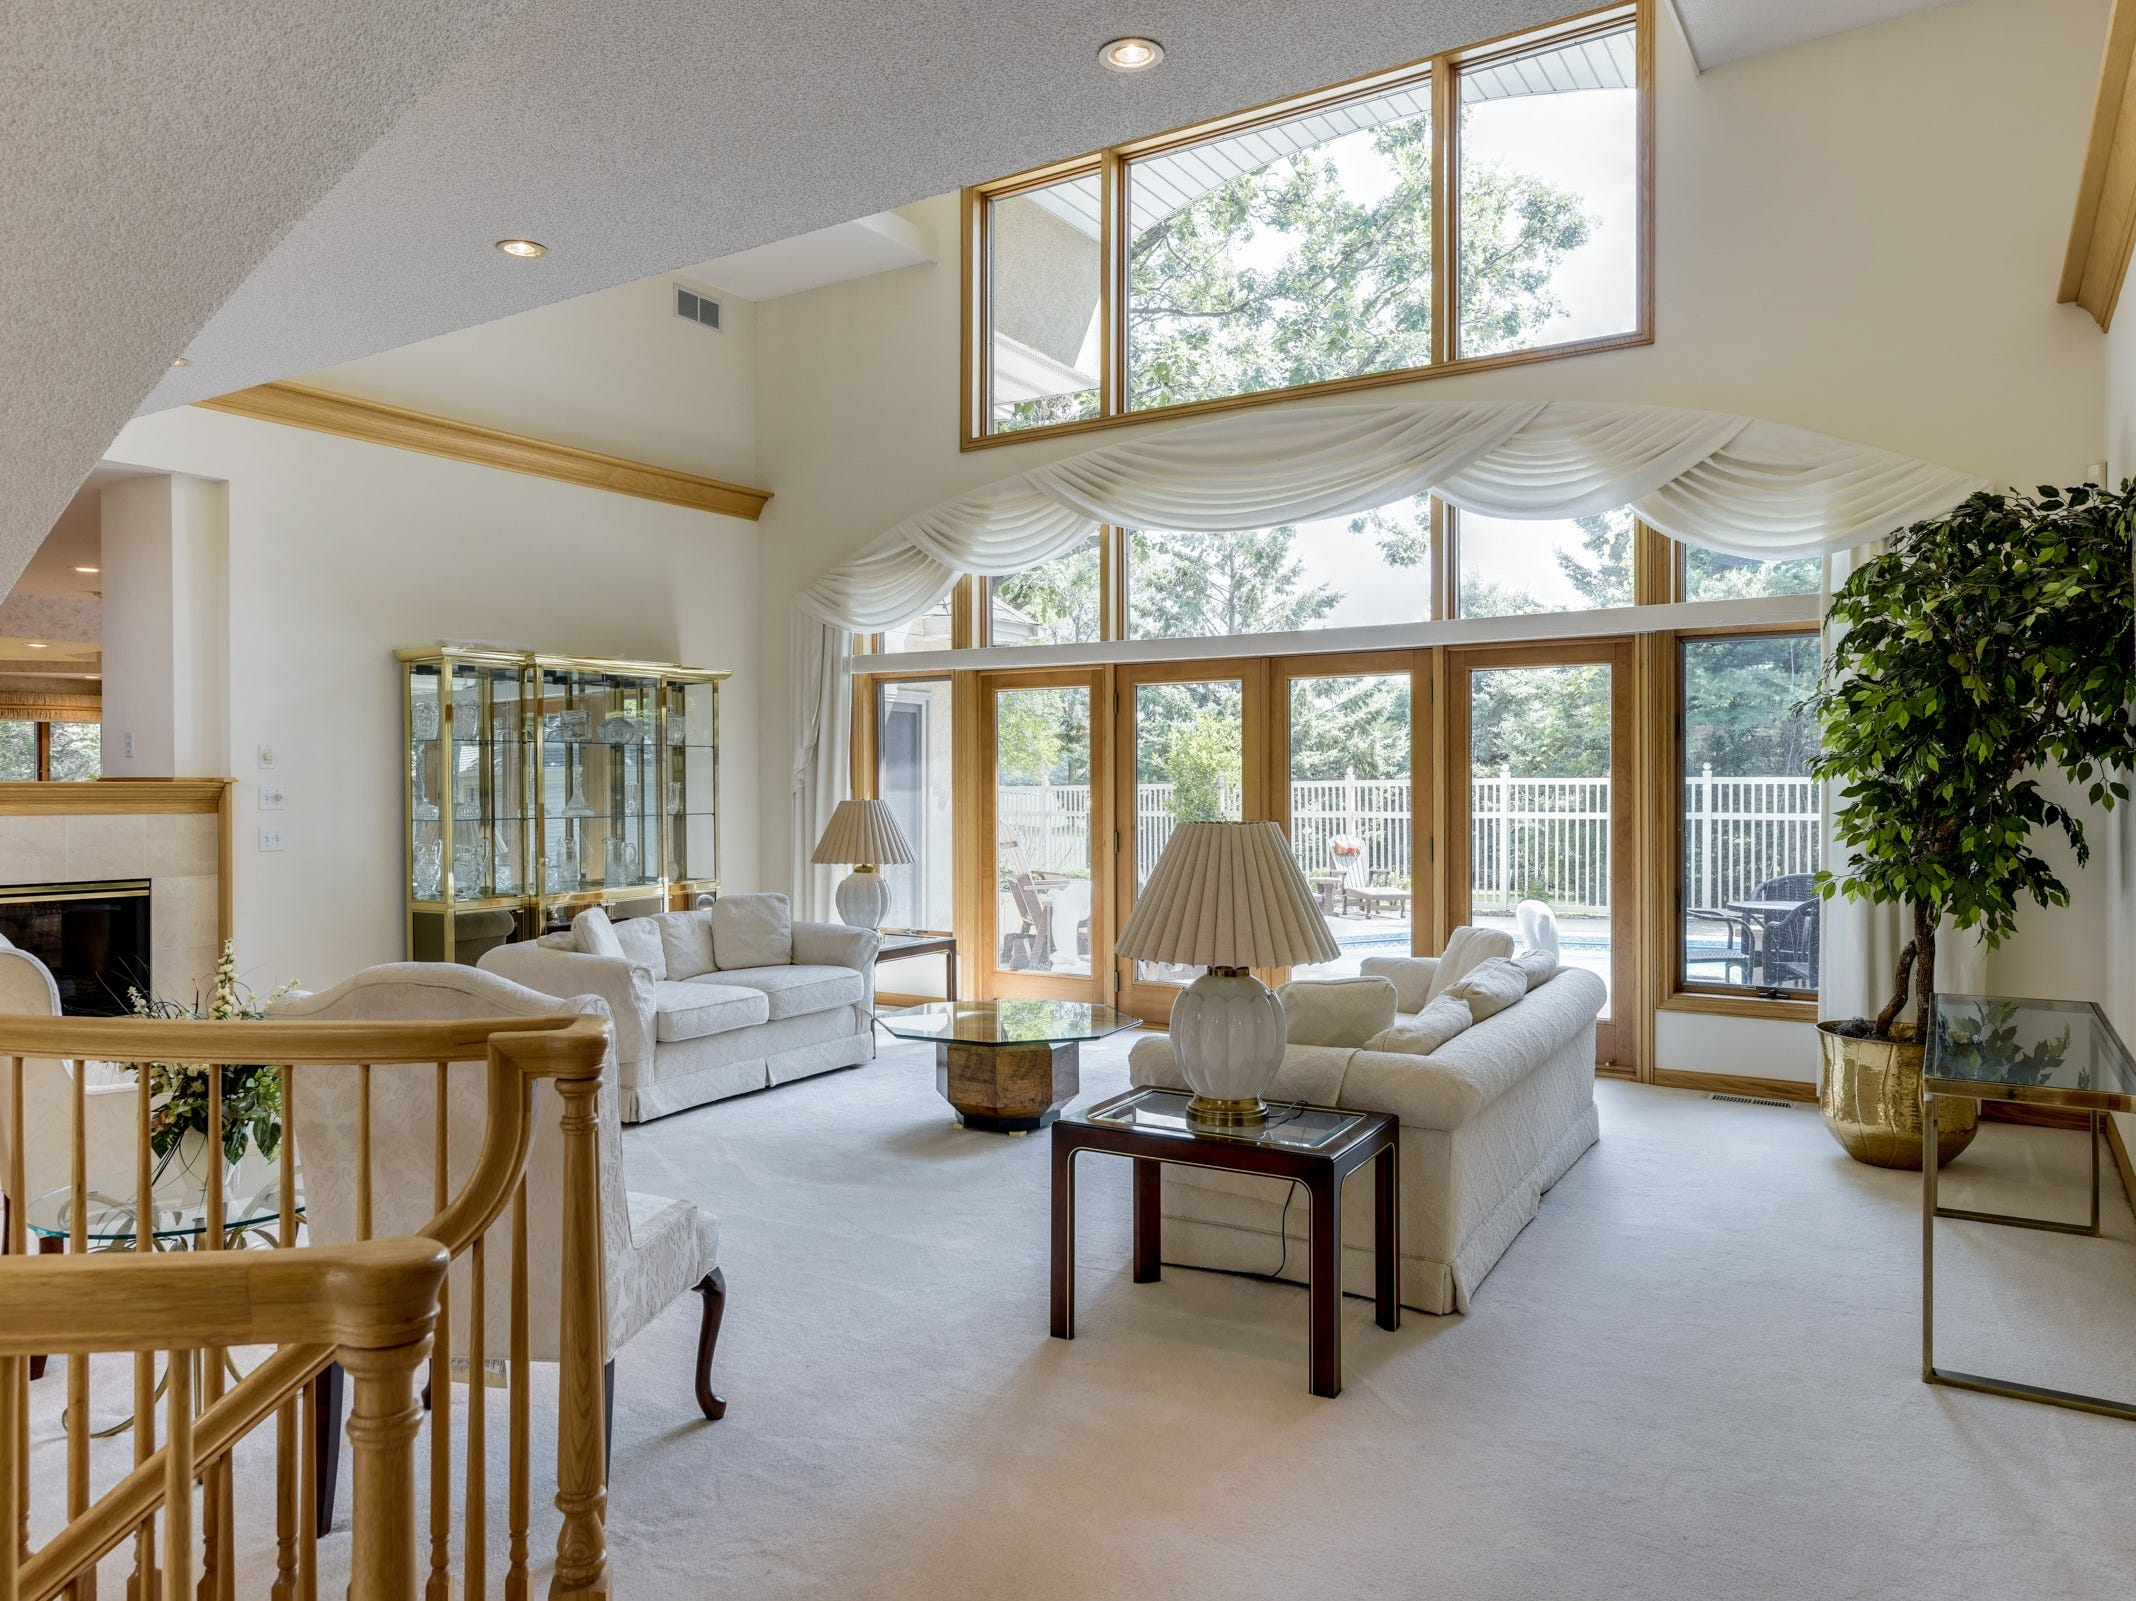 Just beyond the staircase sits the living room with its two-story ceilings and wall-to-wall, floor-to-ceiling windows.